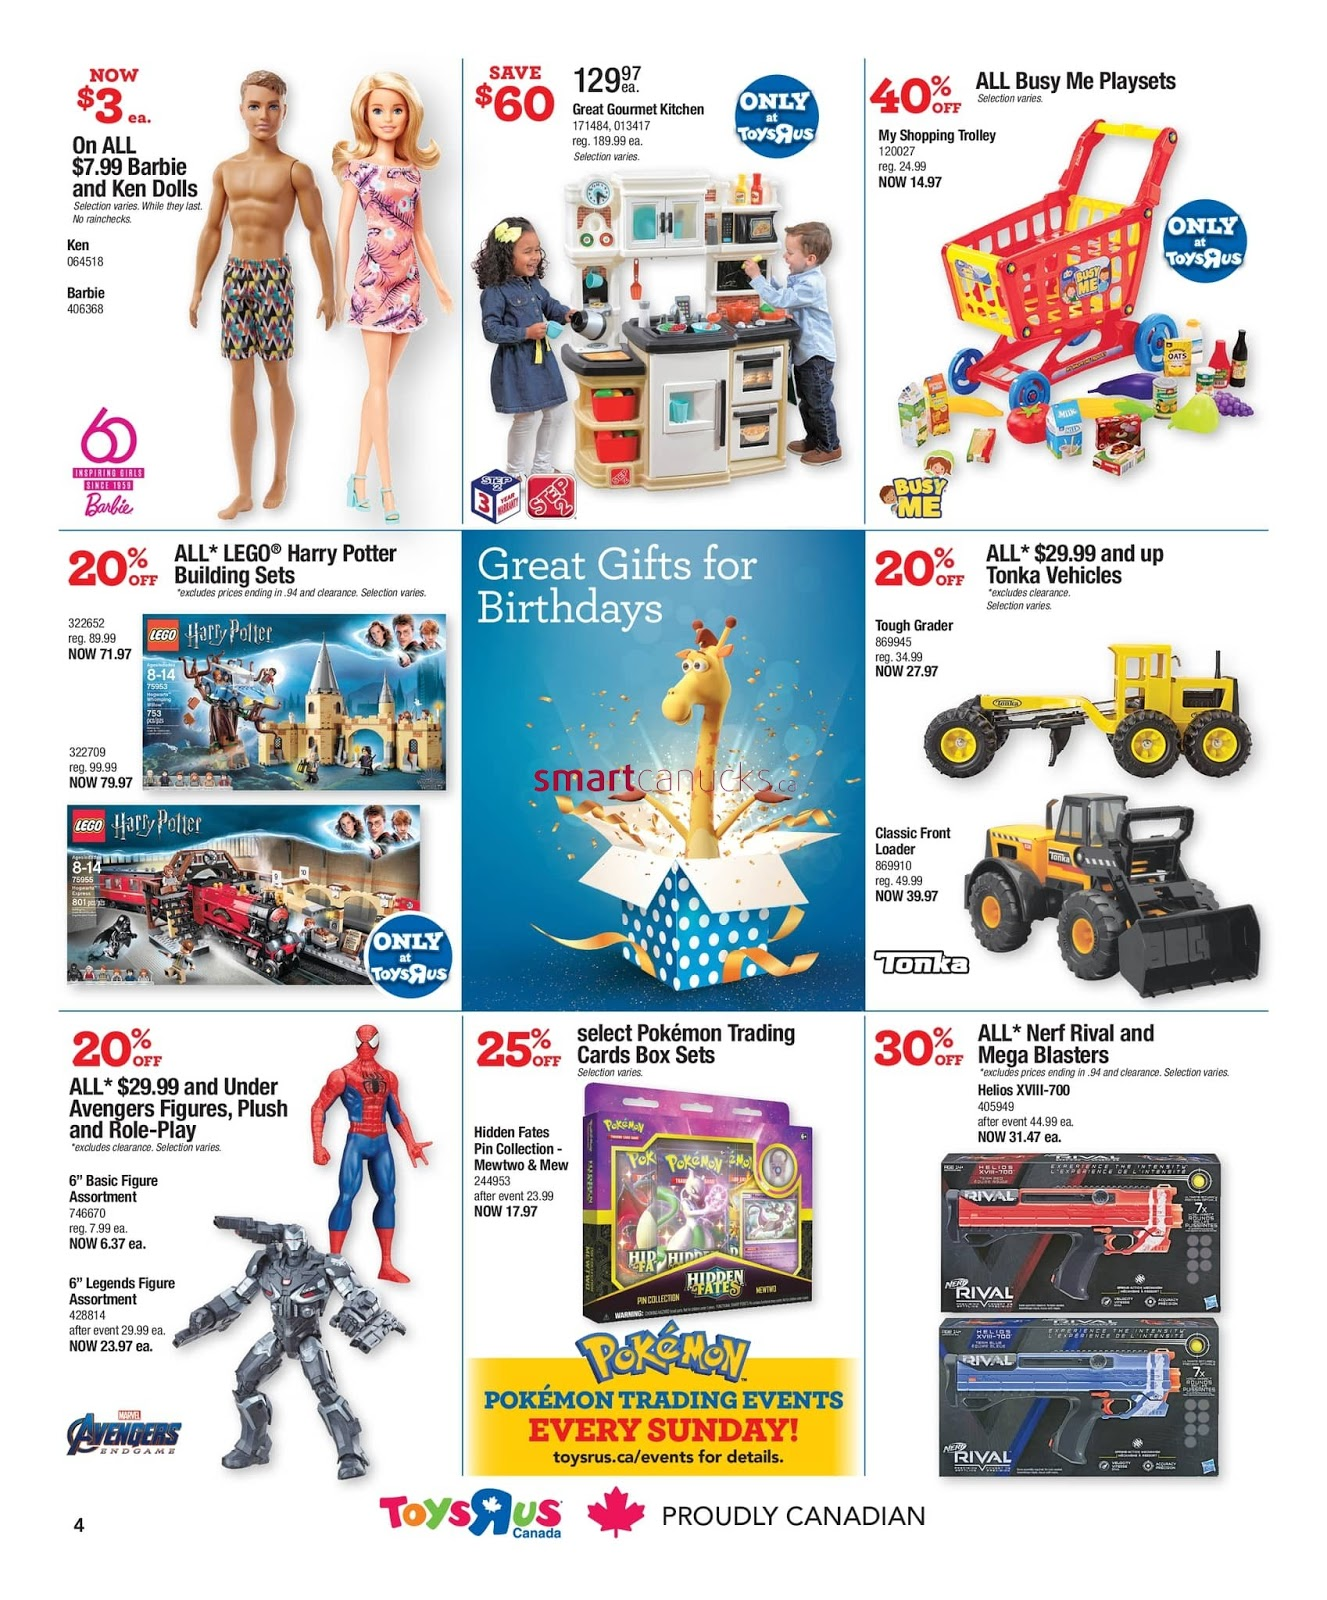 Toys R Us Flyer Out Door & Play valid September 6 - 12, 2019